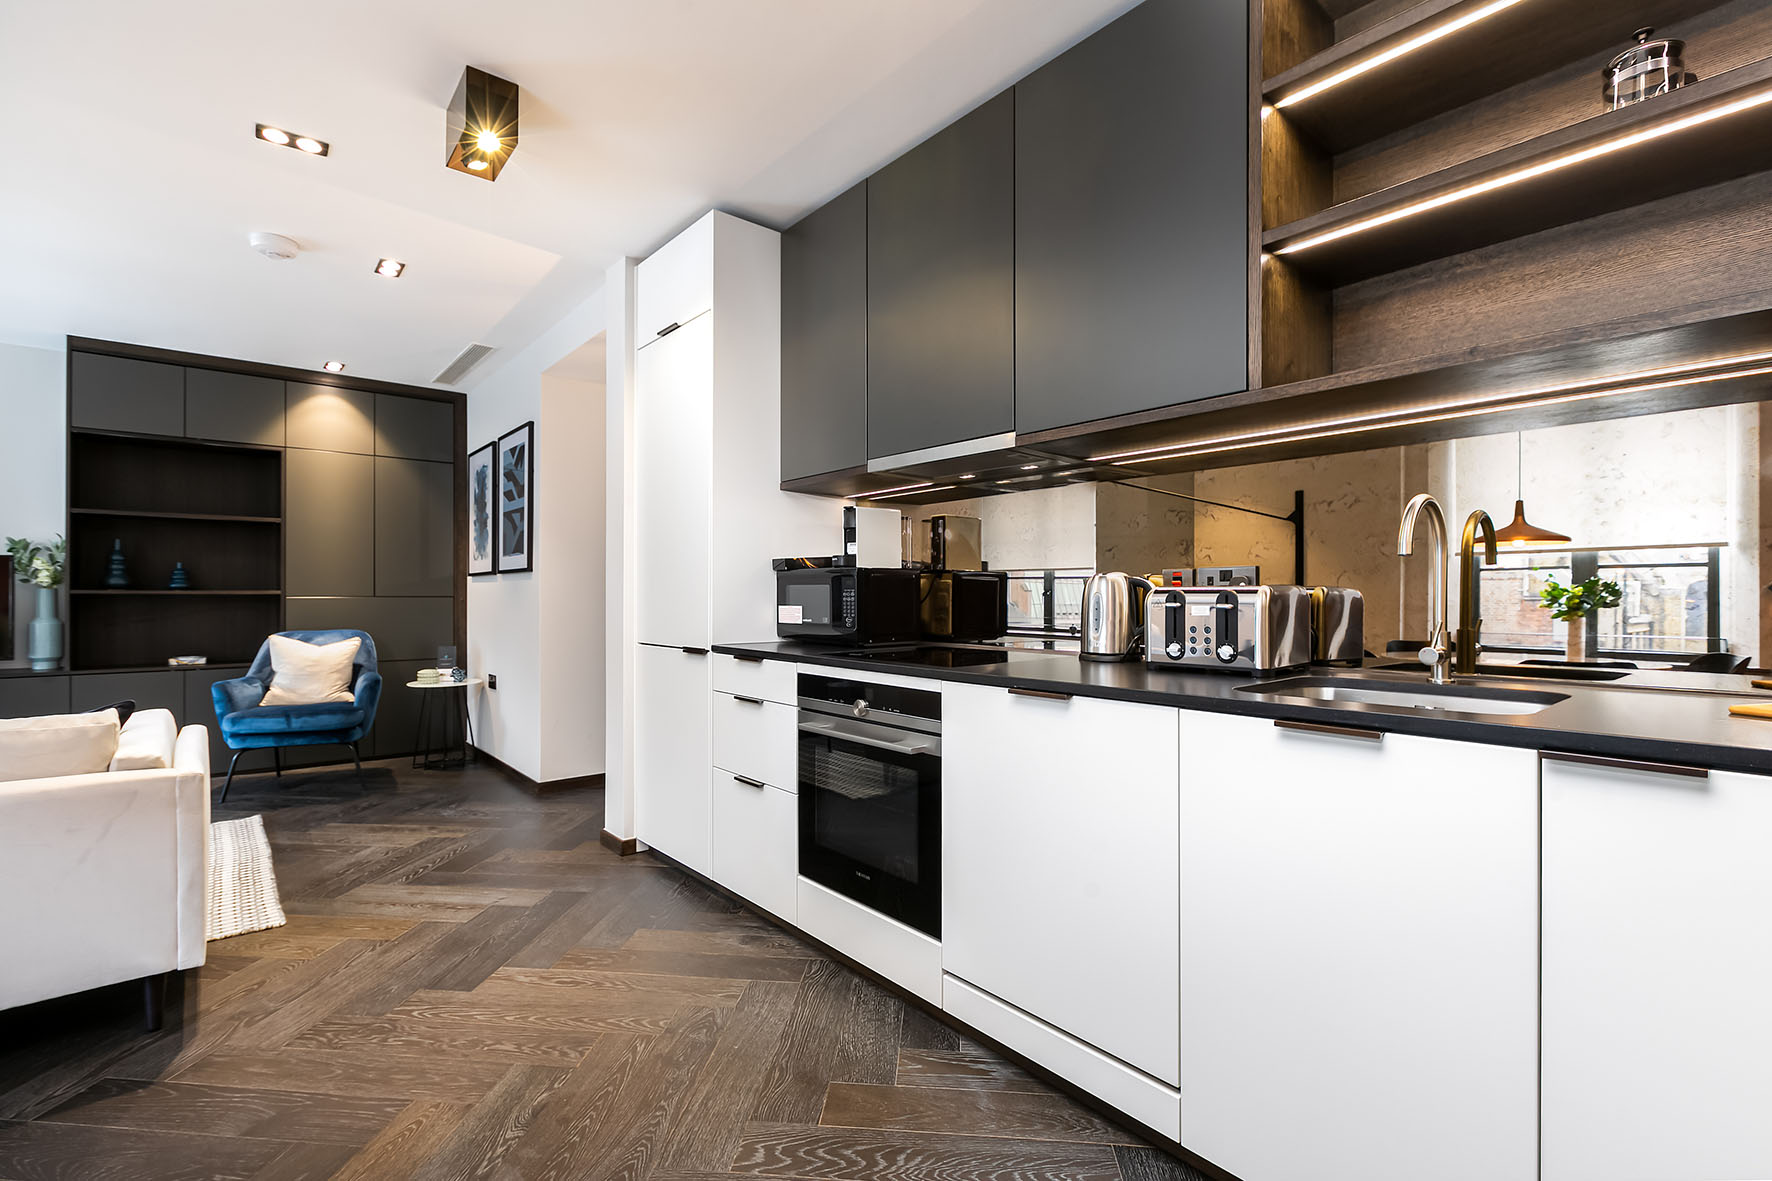 Lovelydays luxury service apartment rental - London - Soho - Noel Street VII - Lovelysuite - 1 bedrooms - 1 bathrooms - Luxury kitchen - 72e0a091a4a8 - Lovelydays